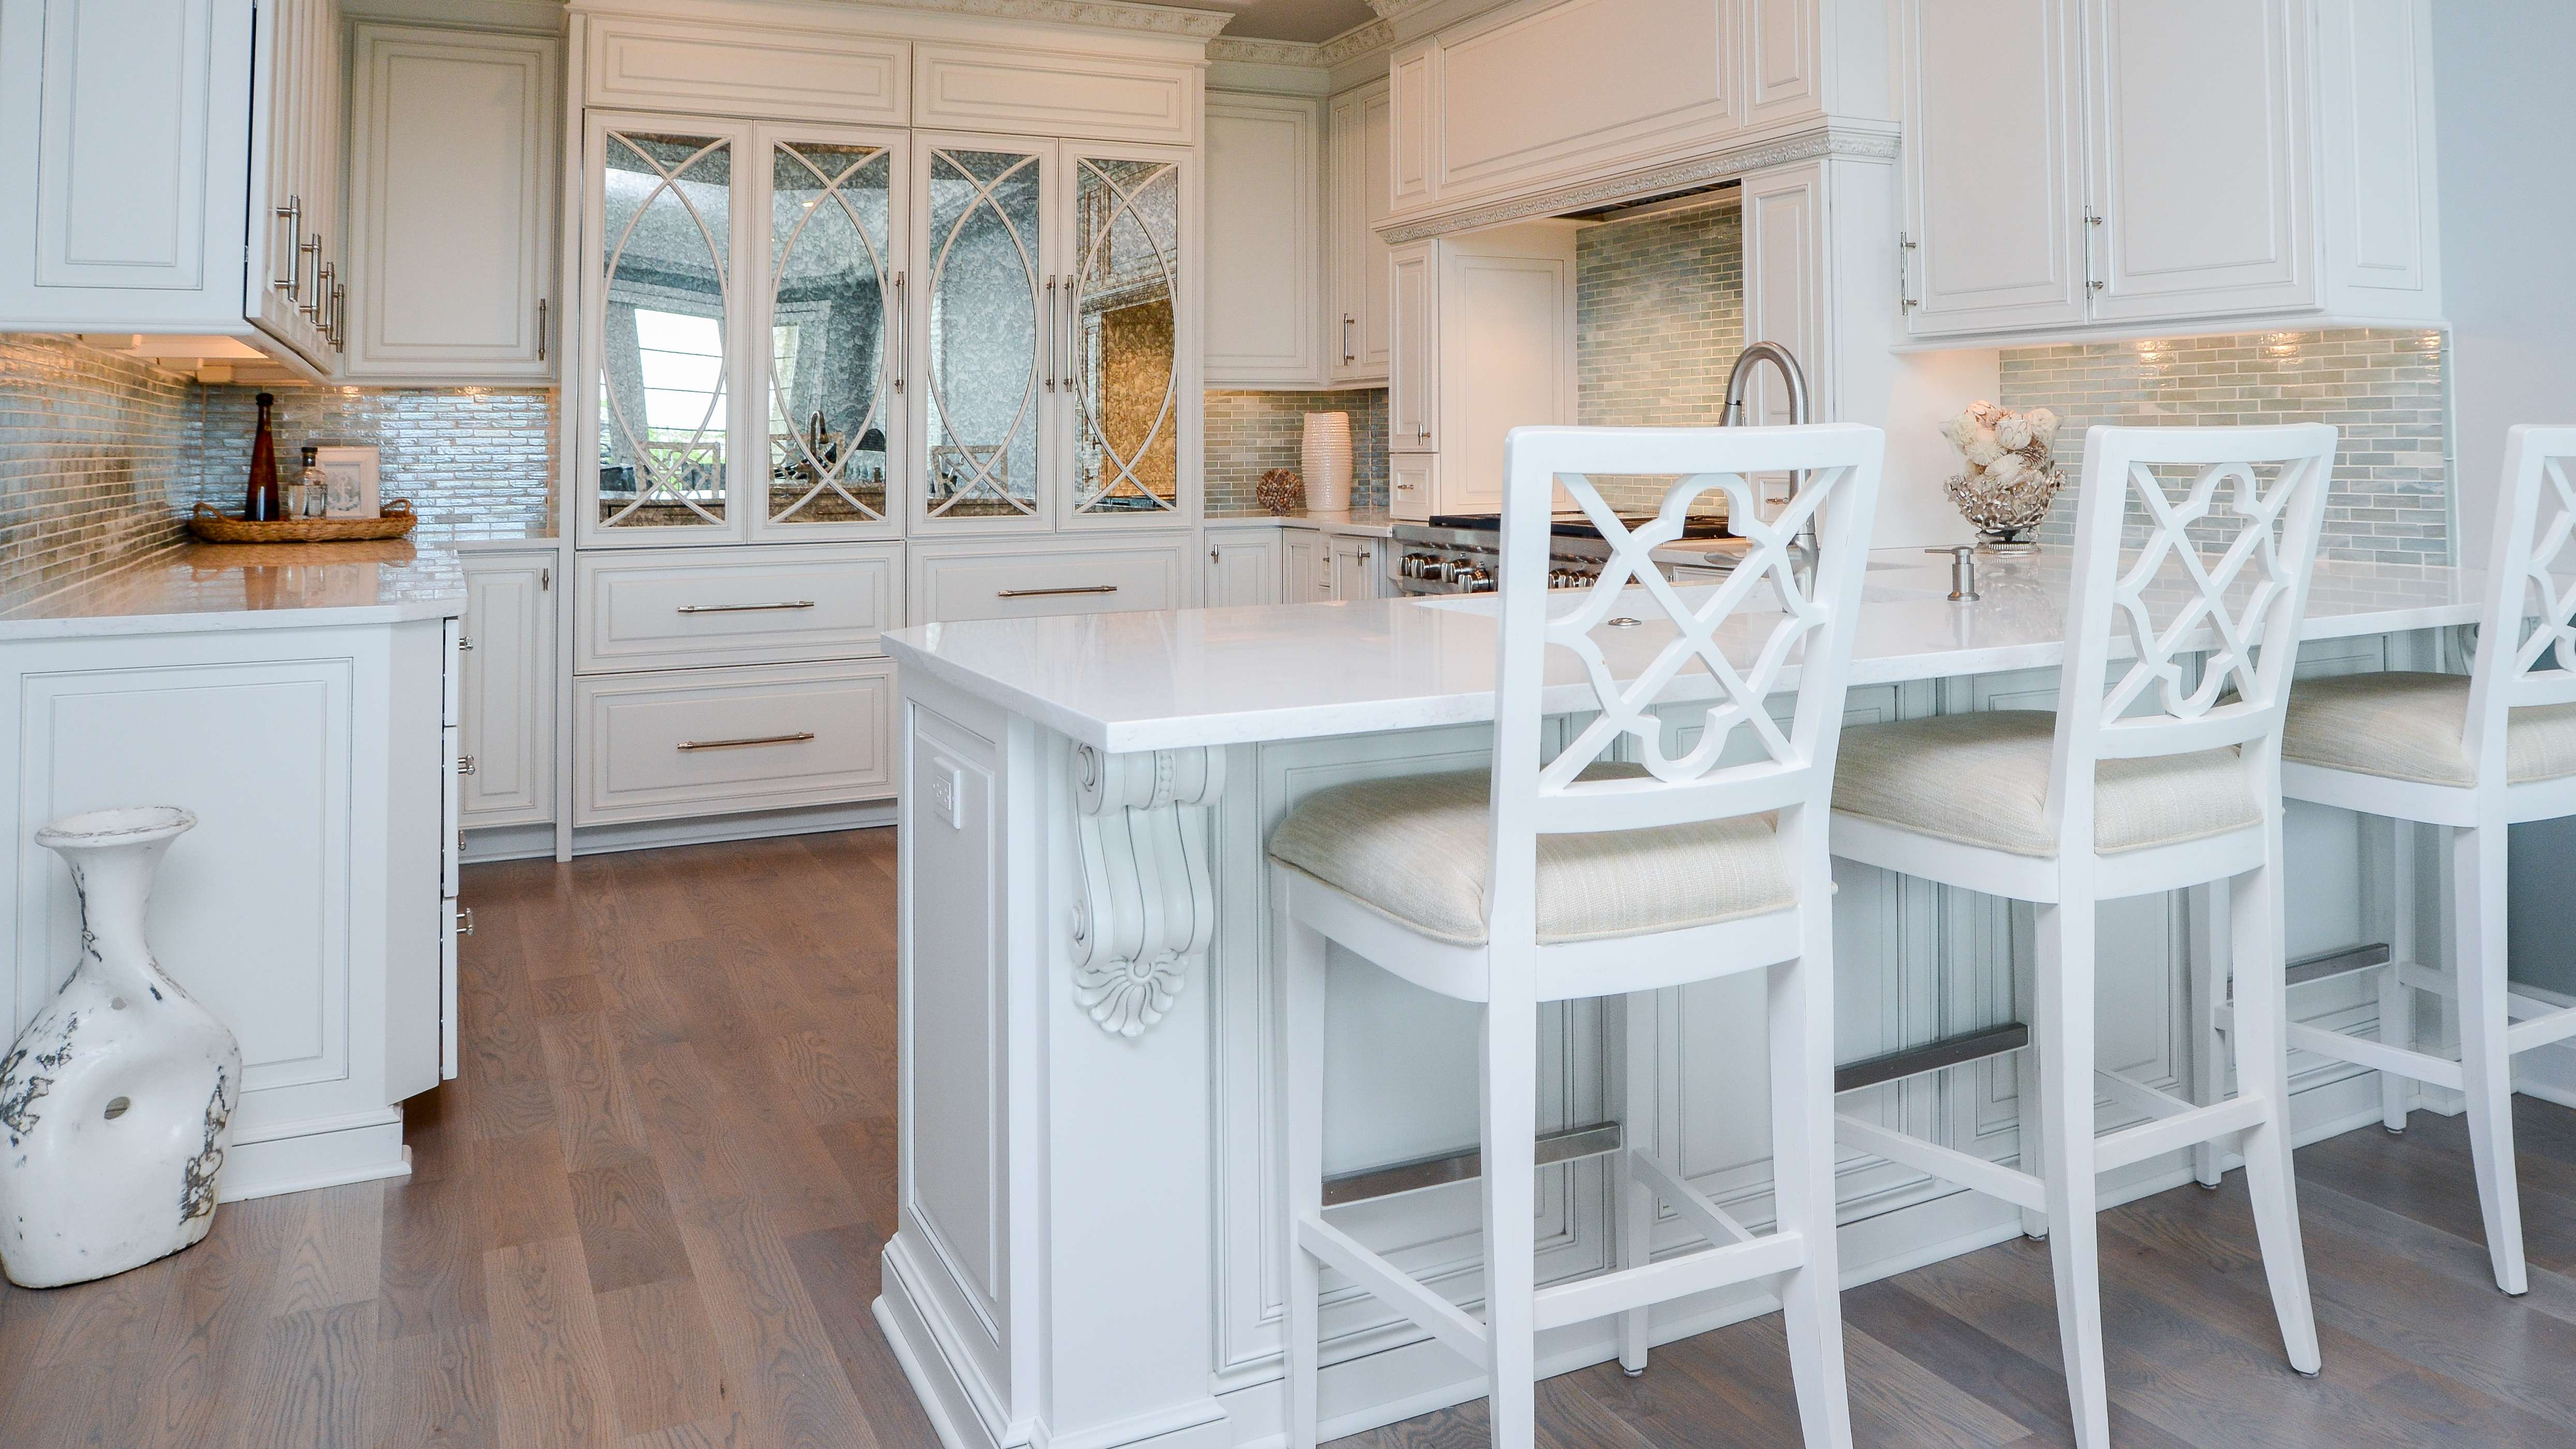 A kitchen that has received kitchen remodeling services in Hammonton, NJ